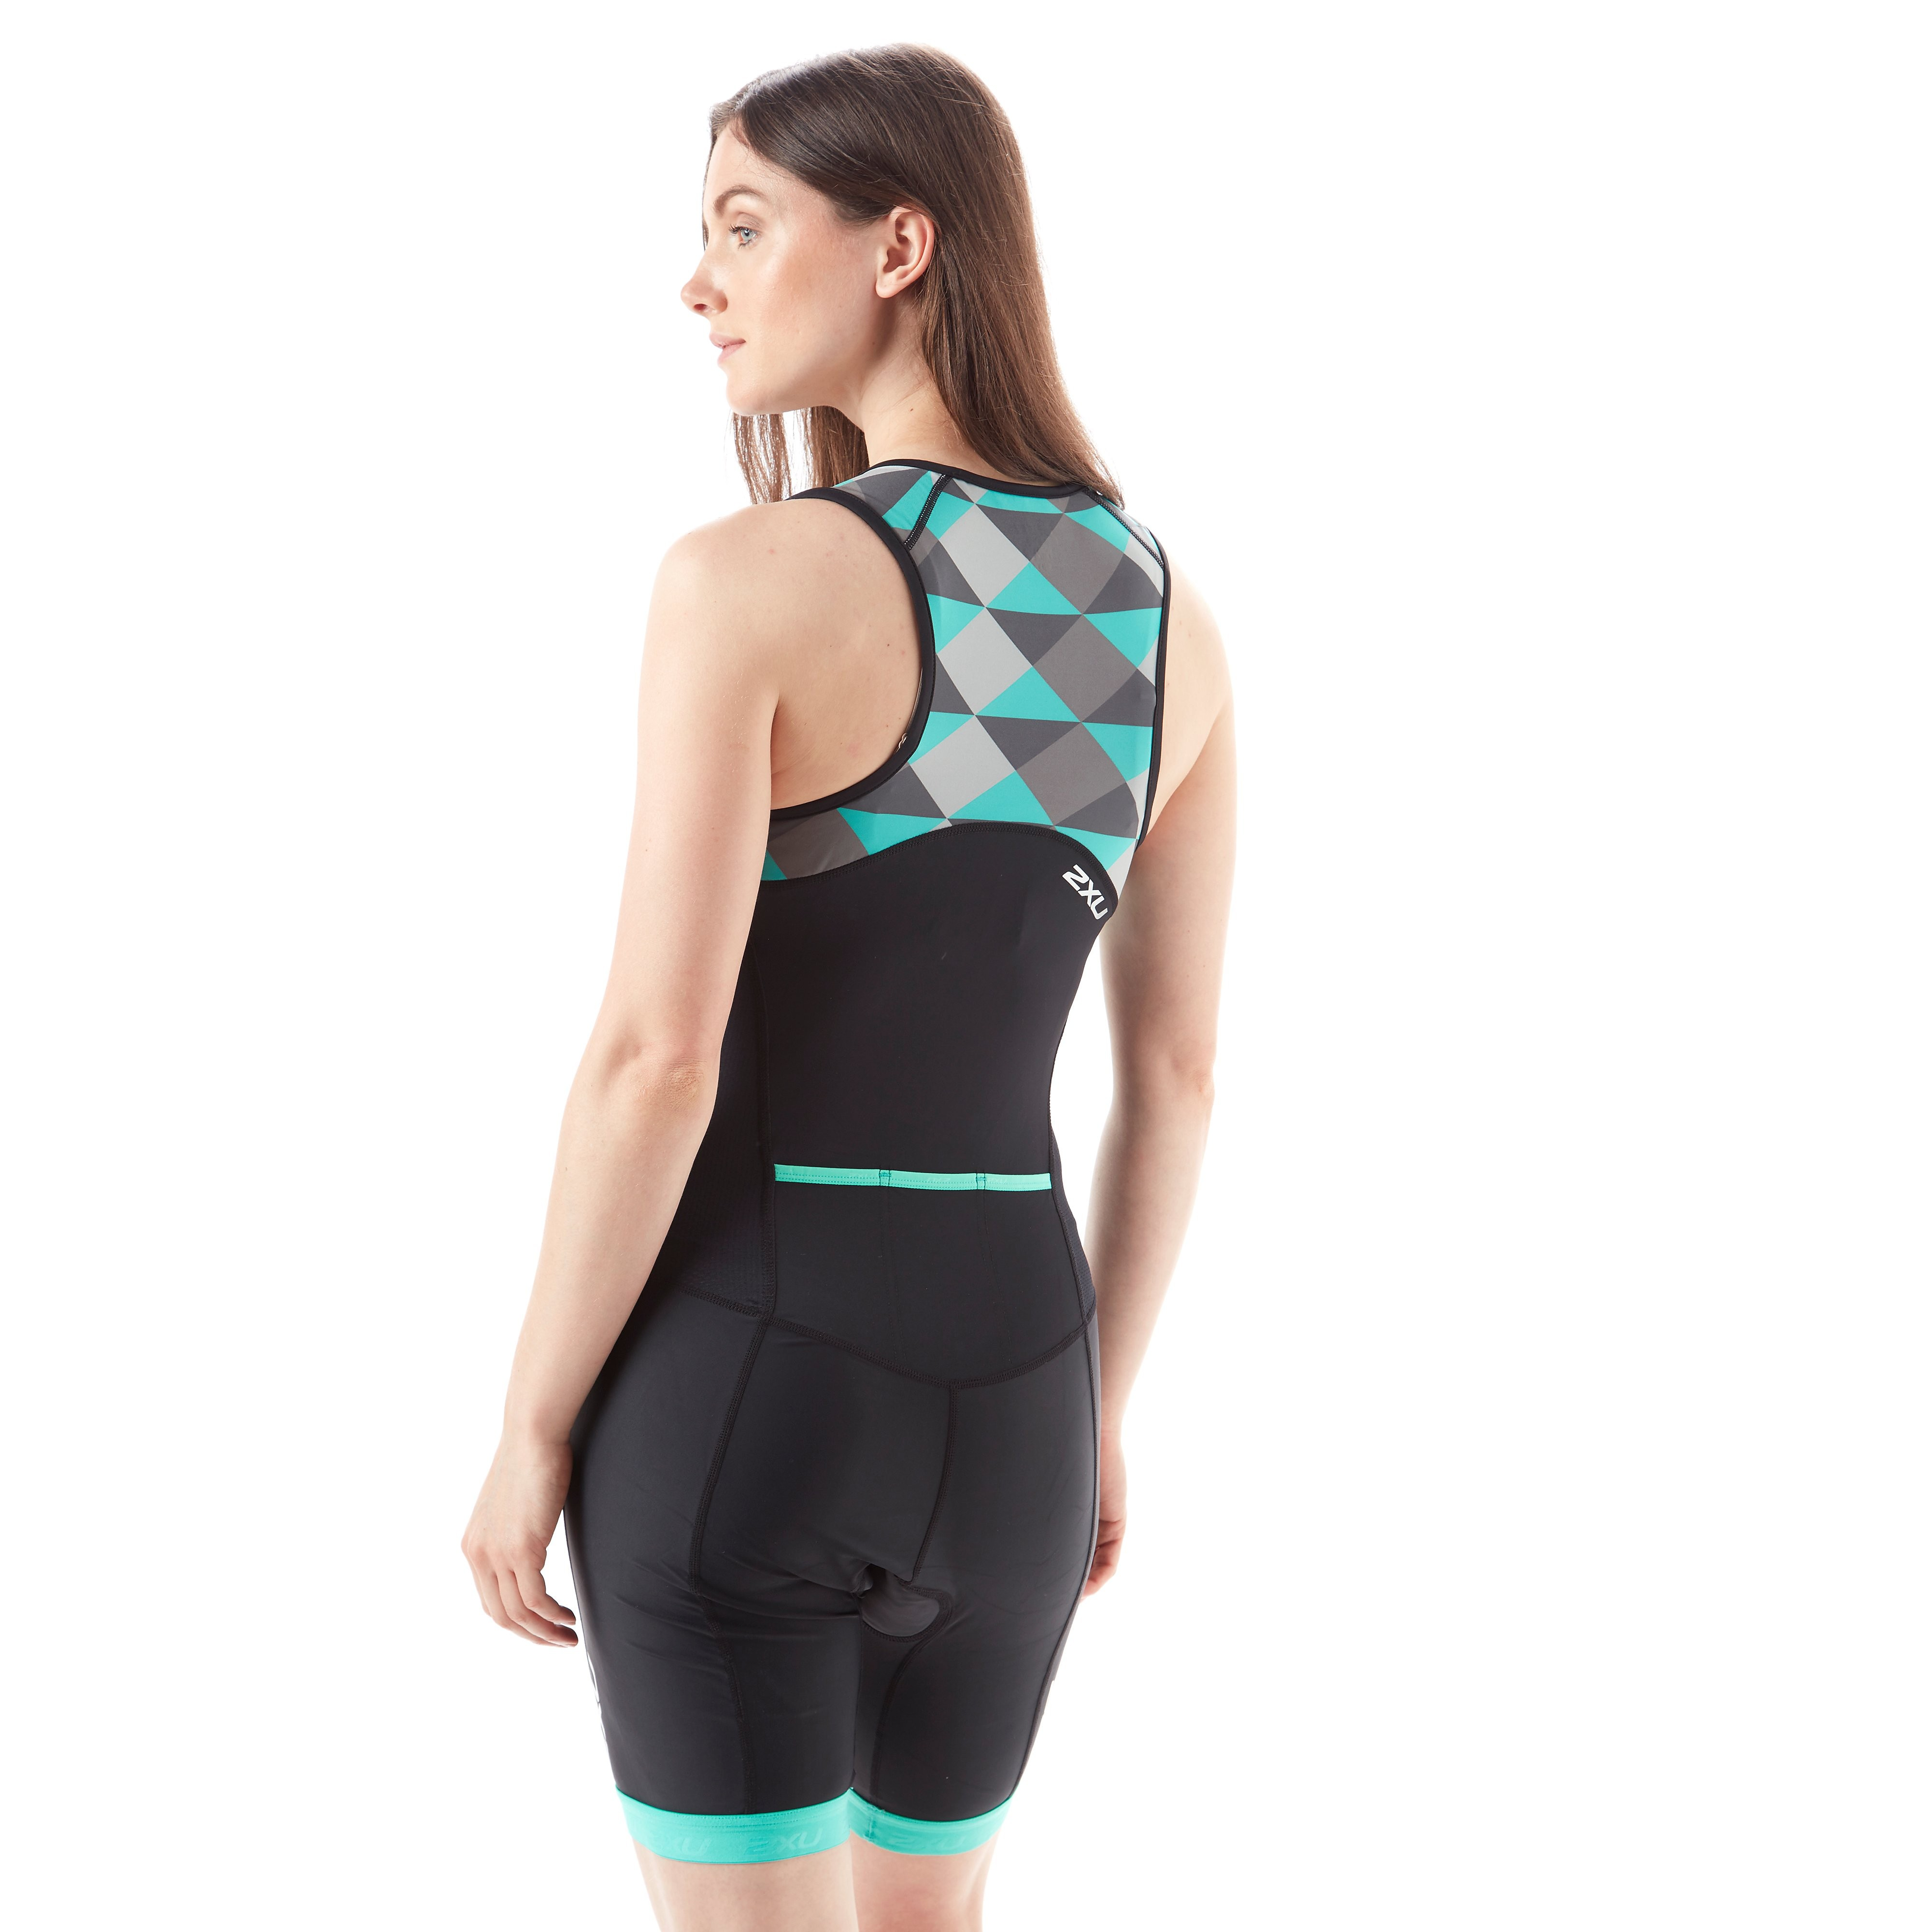 2XU Active Women's Trisuit